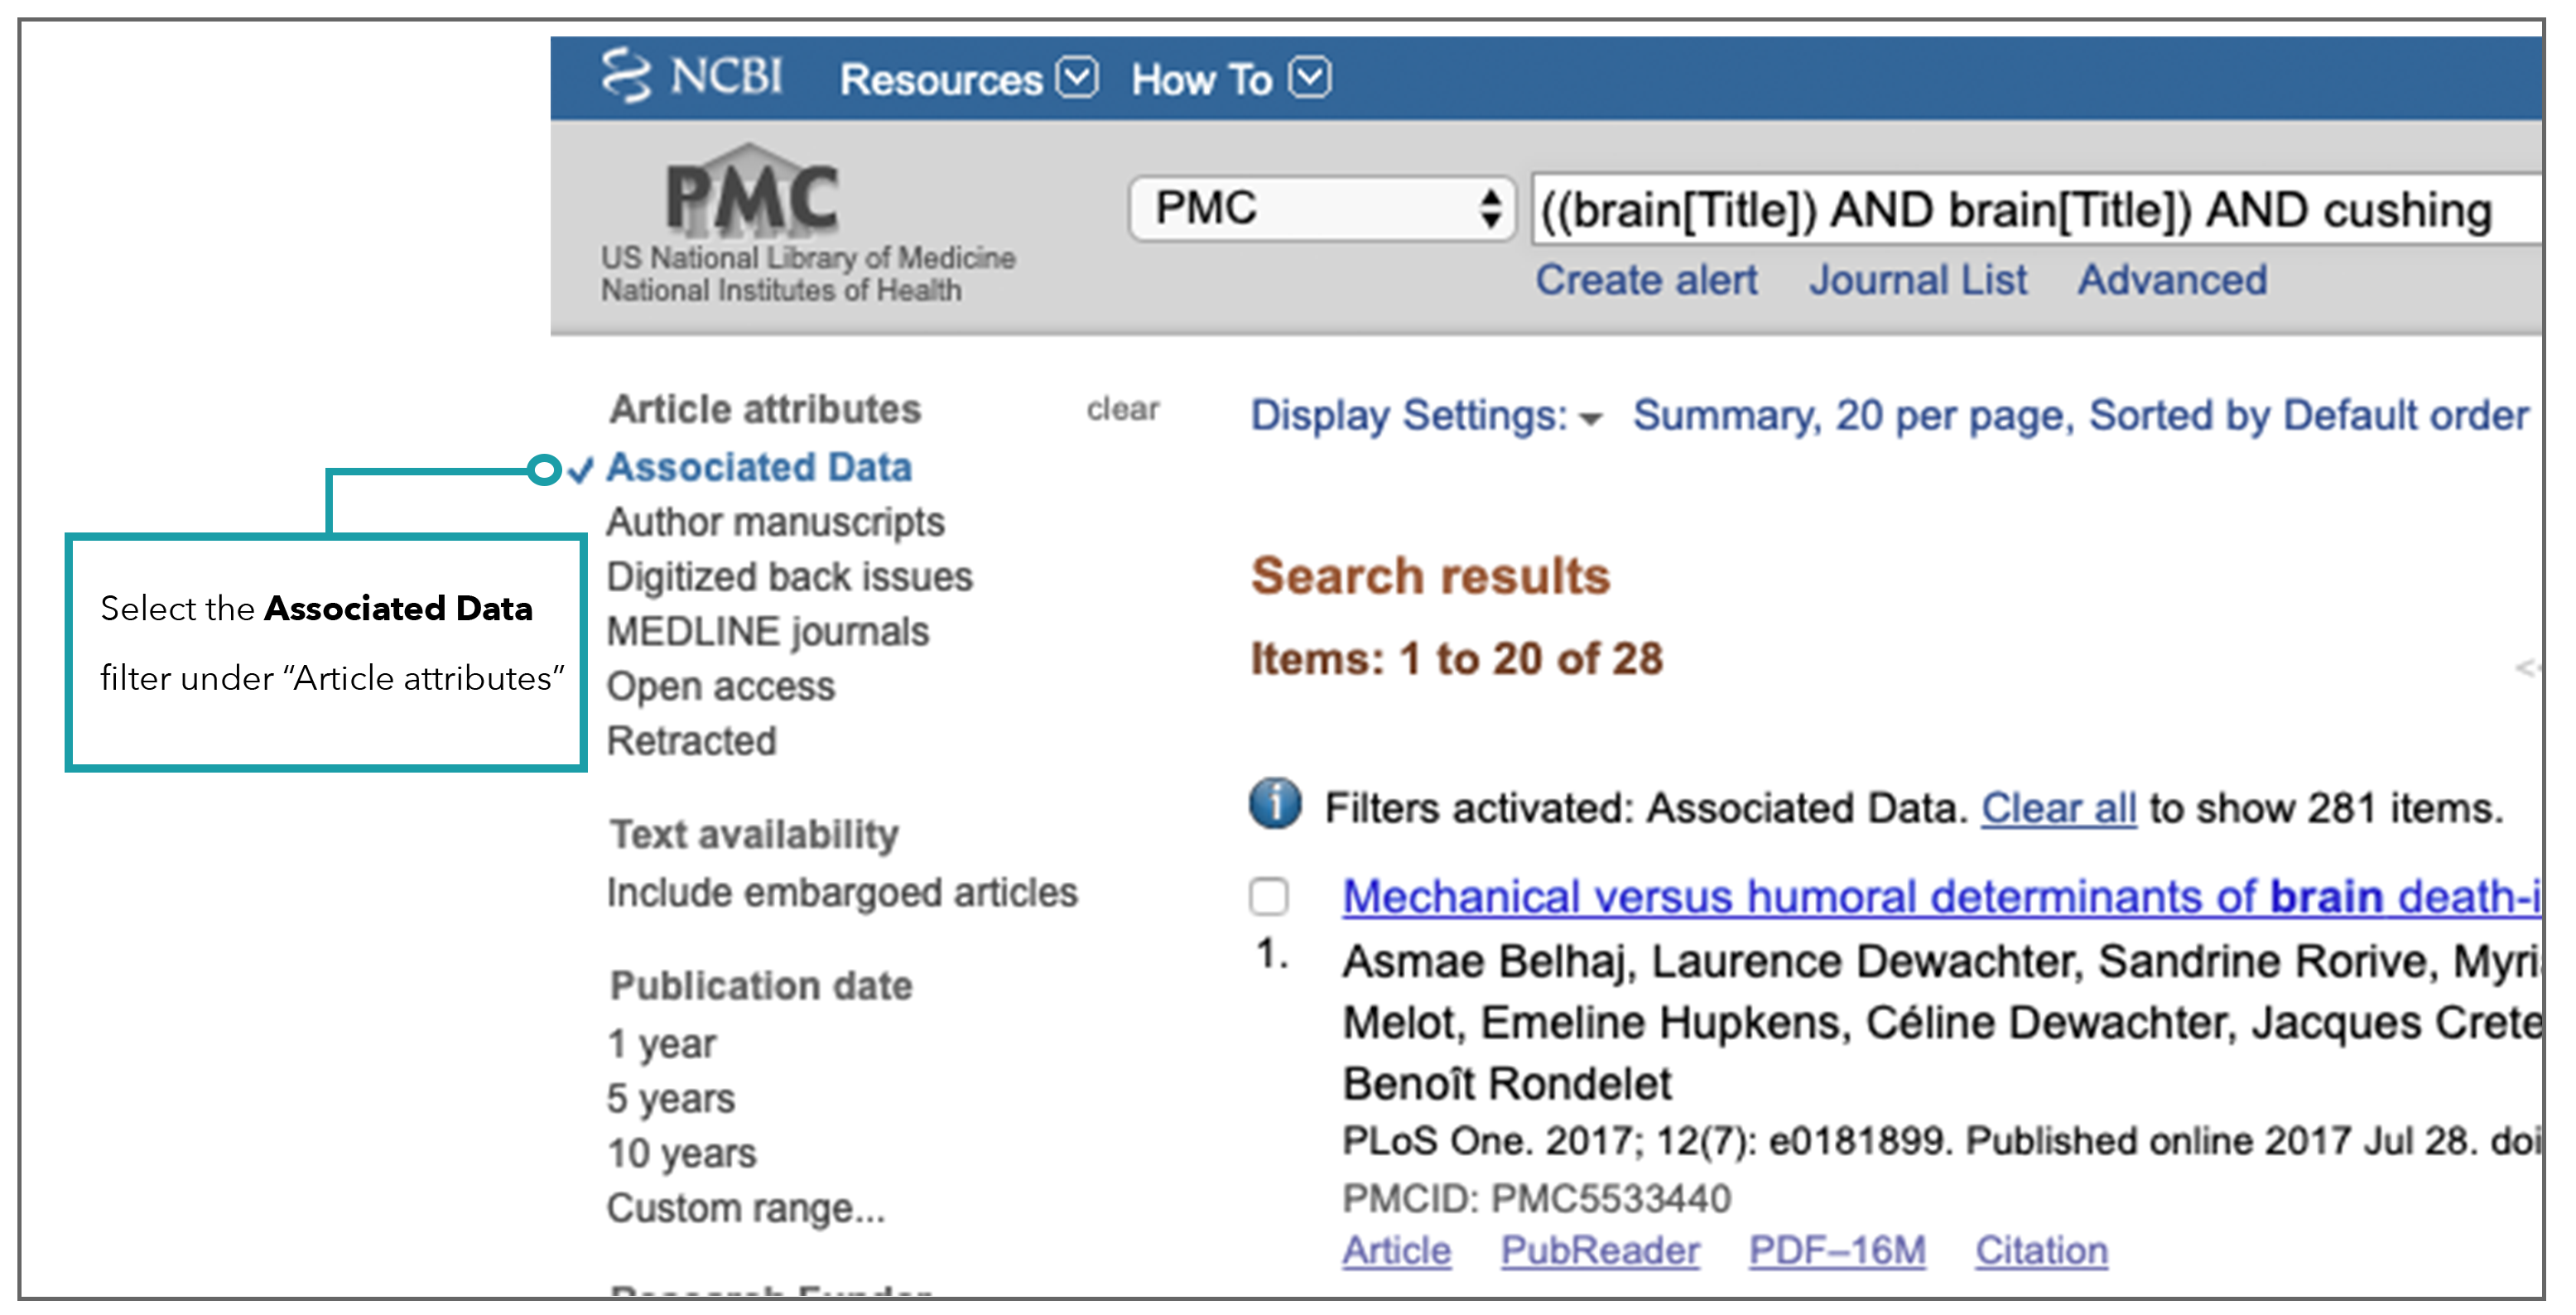 screen shot of associated data selection under article attributes